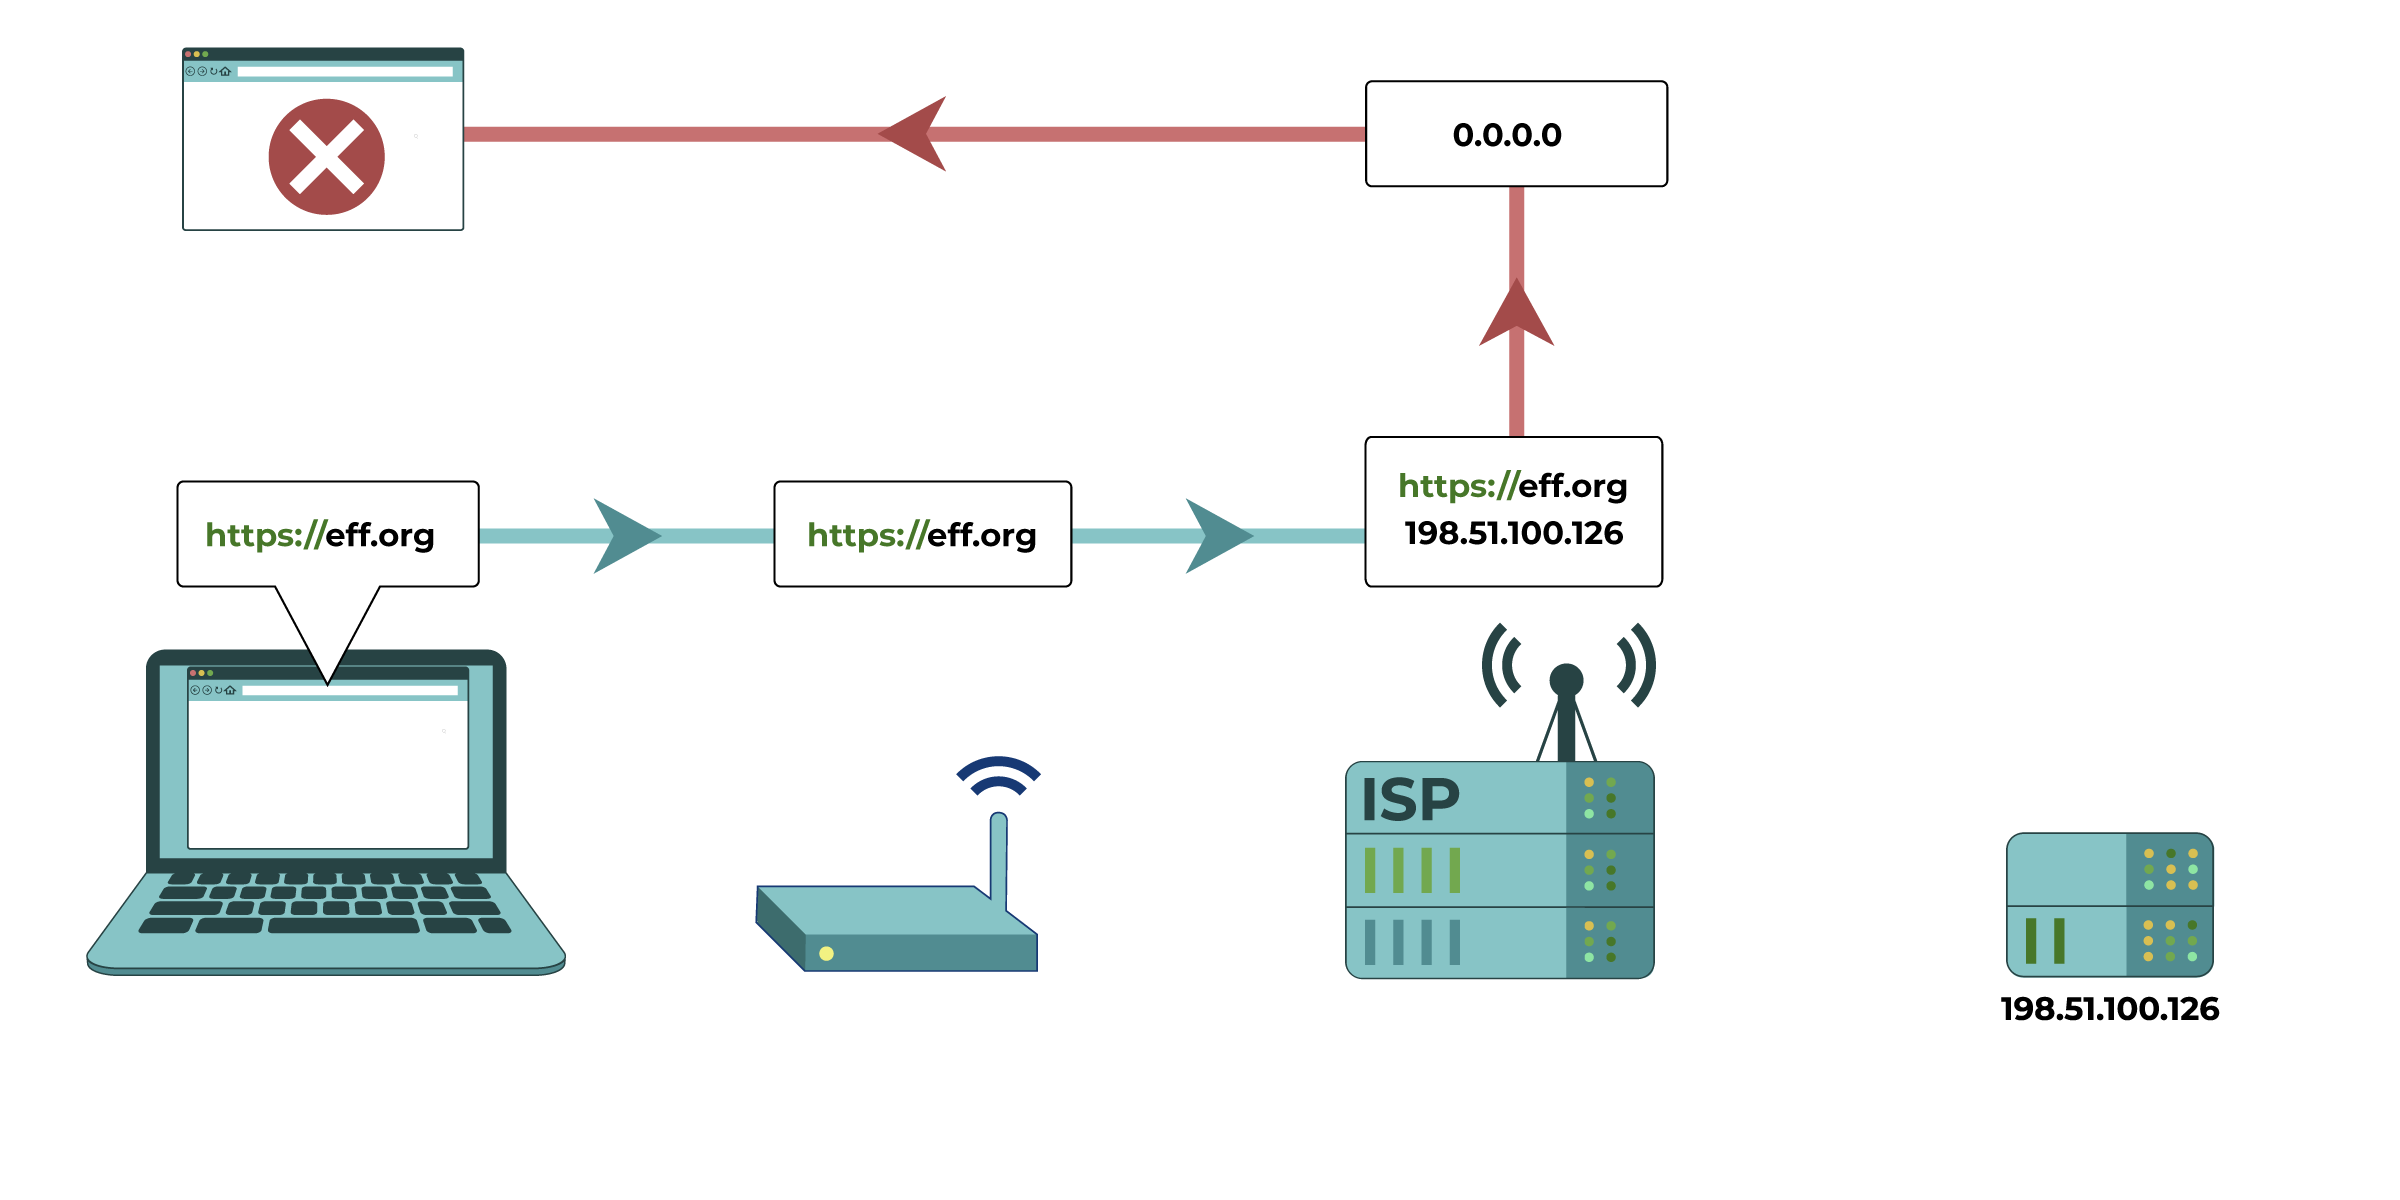 In this diagram, the request for eff.org's IP address is modified at the Internet Service Provider level. The ISP interferes with the DNS resolver, and the IP address is redirected to give an incorrect answer or no answer.